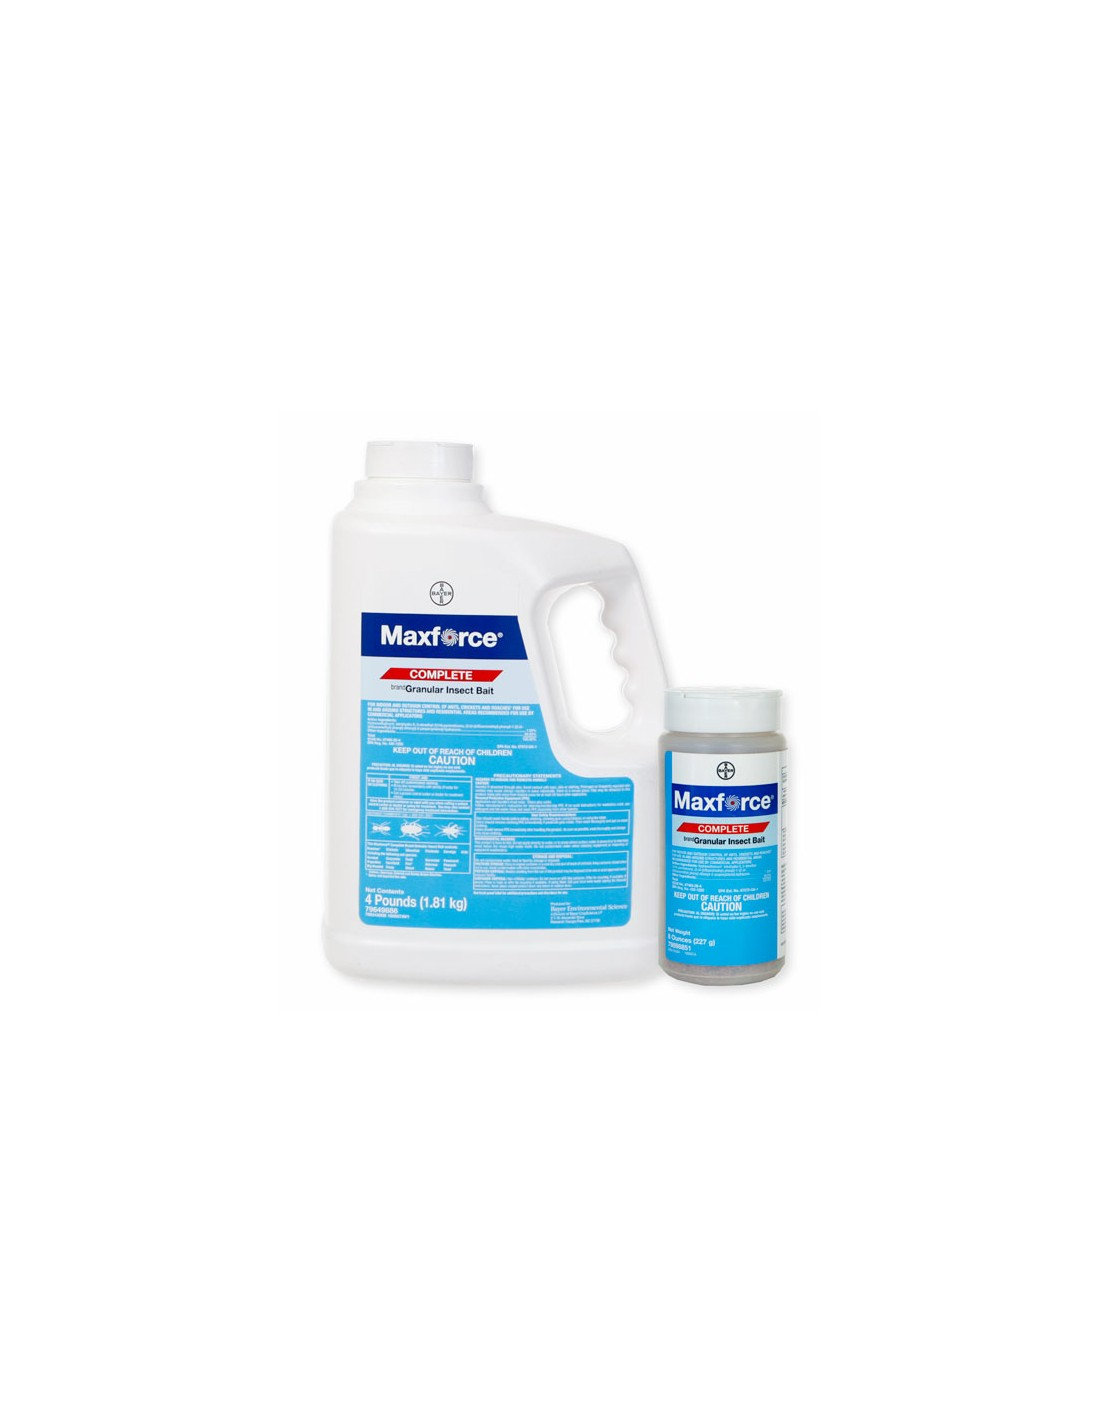 How do you apply the maxforce professional granular bait on short cut bentgrass and will it solve my problem